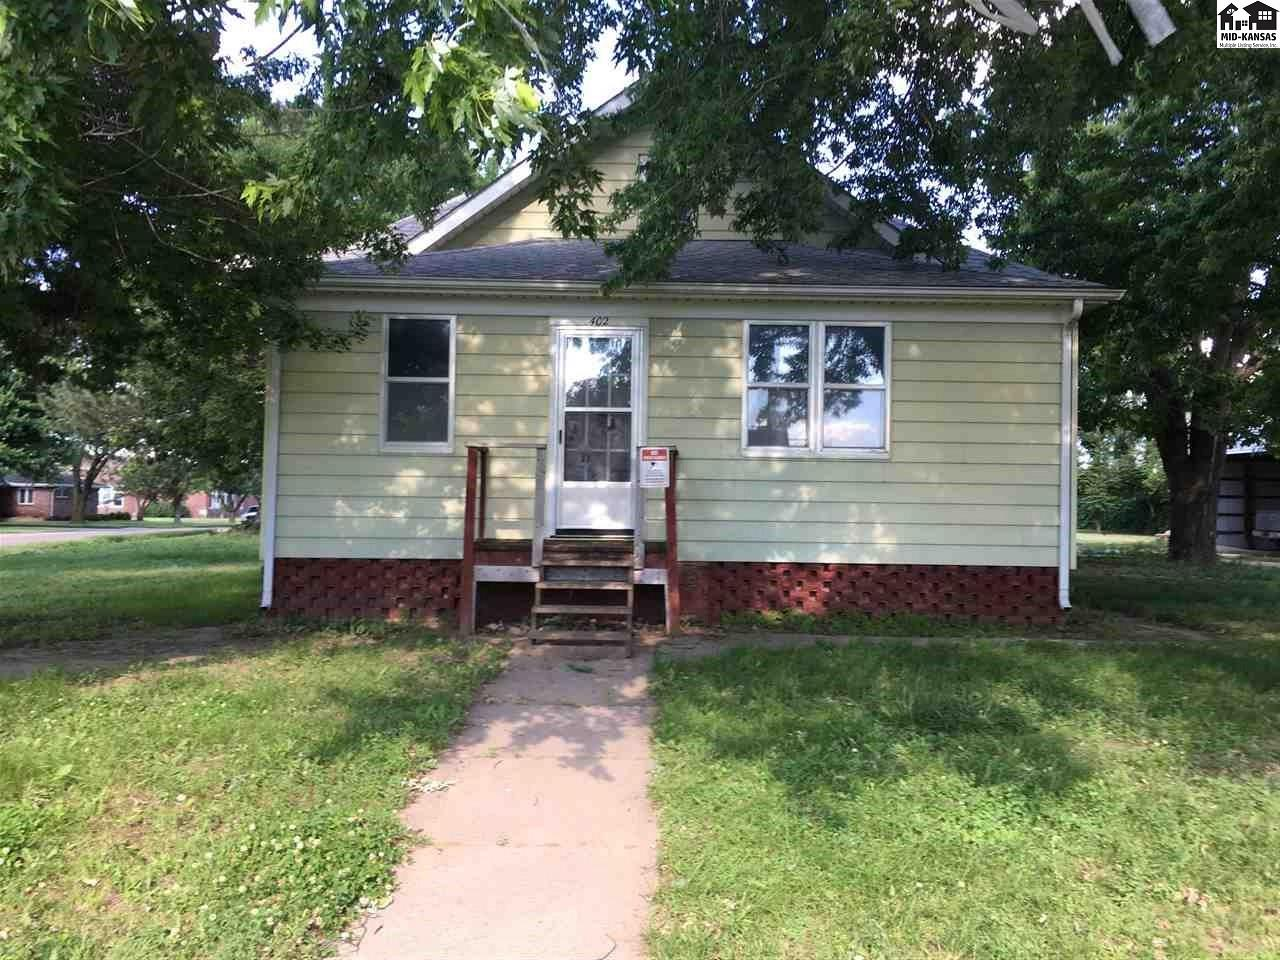 If you're looking for more than 2 bedrooms on the same level in your next house, this is it!! This house has 1,514 sq ft on the main level with 4 bedrooms. There is a carport that was placed in 1996 (24' x 27') that can hold 2 cars and a detached garage that can hold still another.